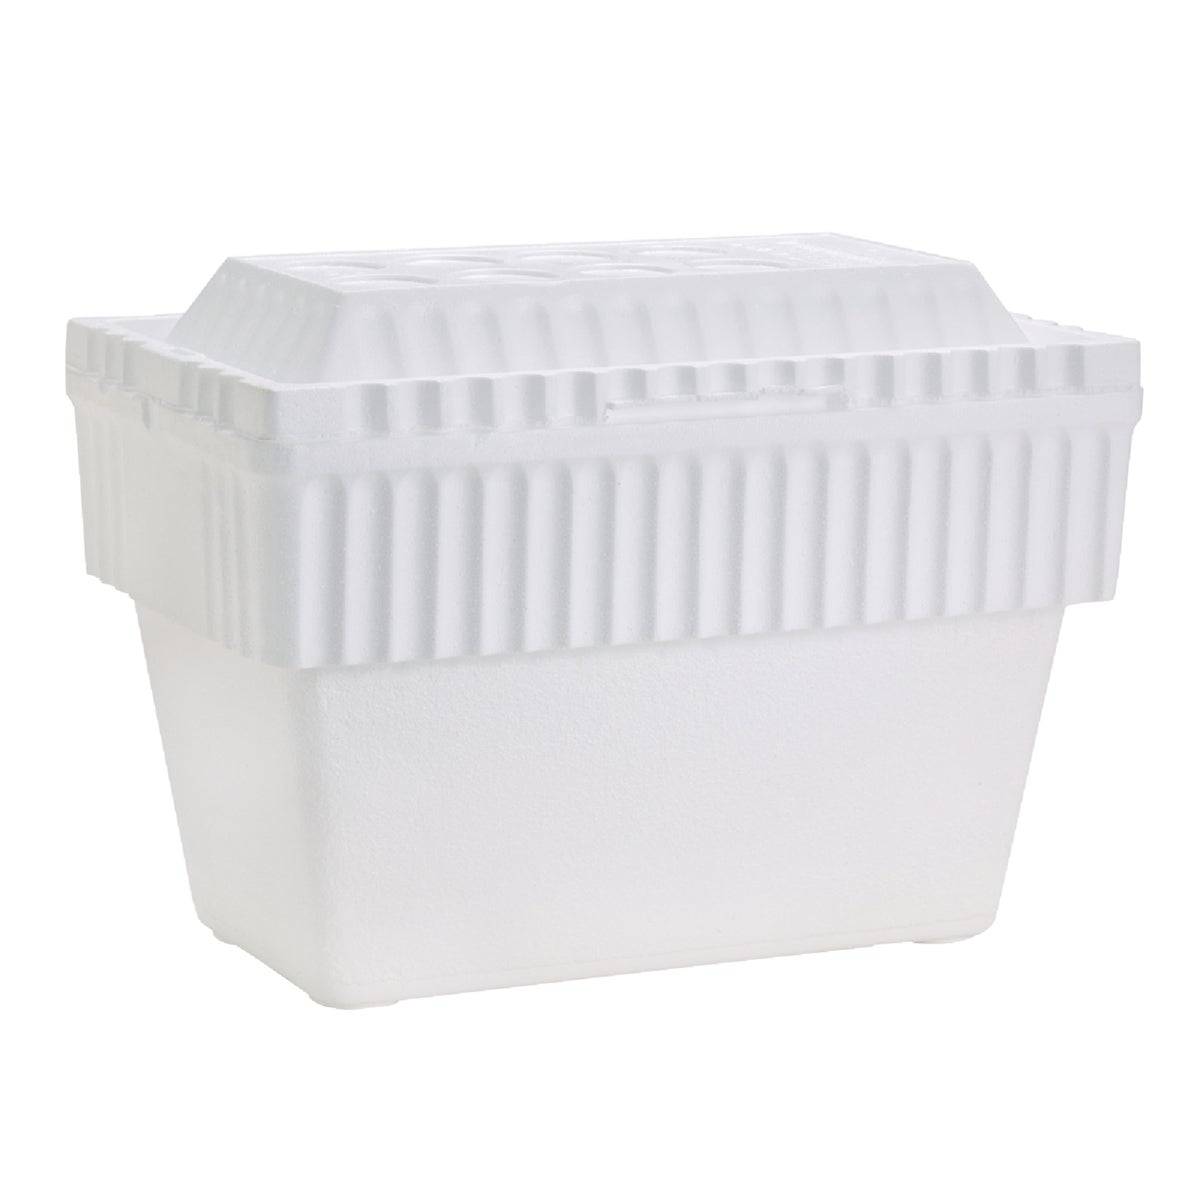 40QT FOAM COOLER - 3419 by Lifoam Div Life Like